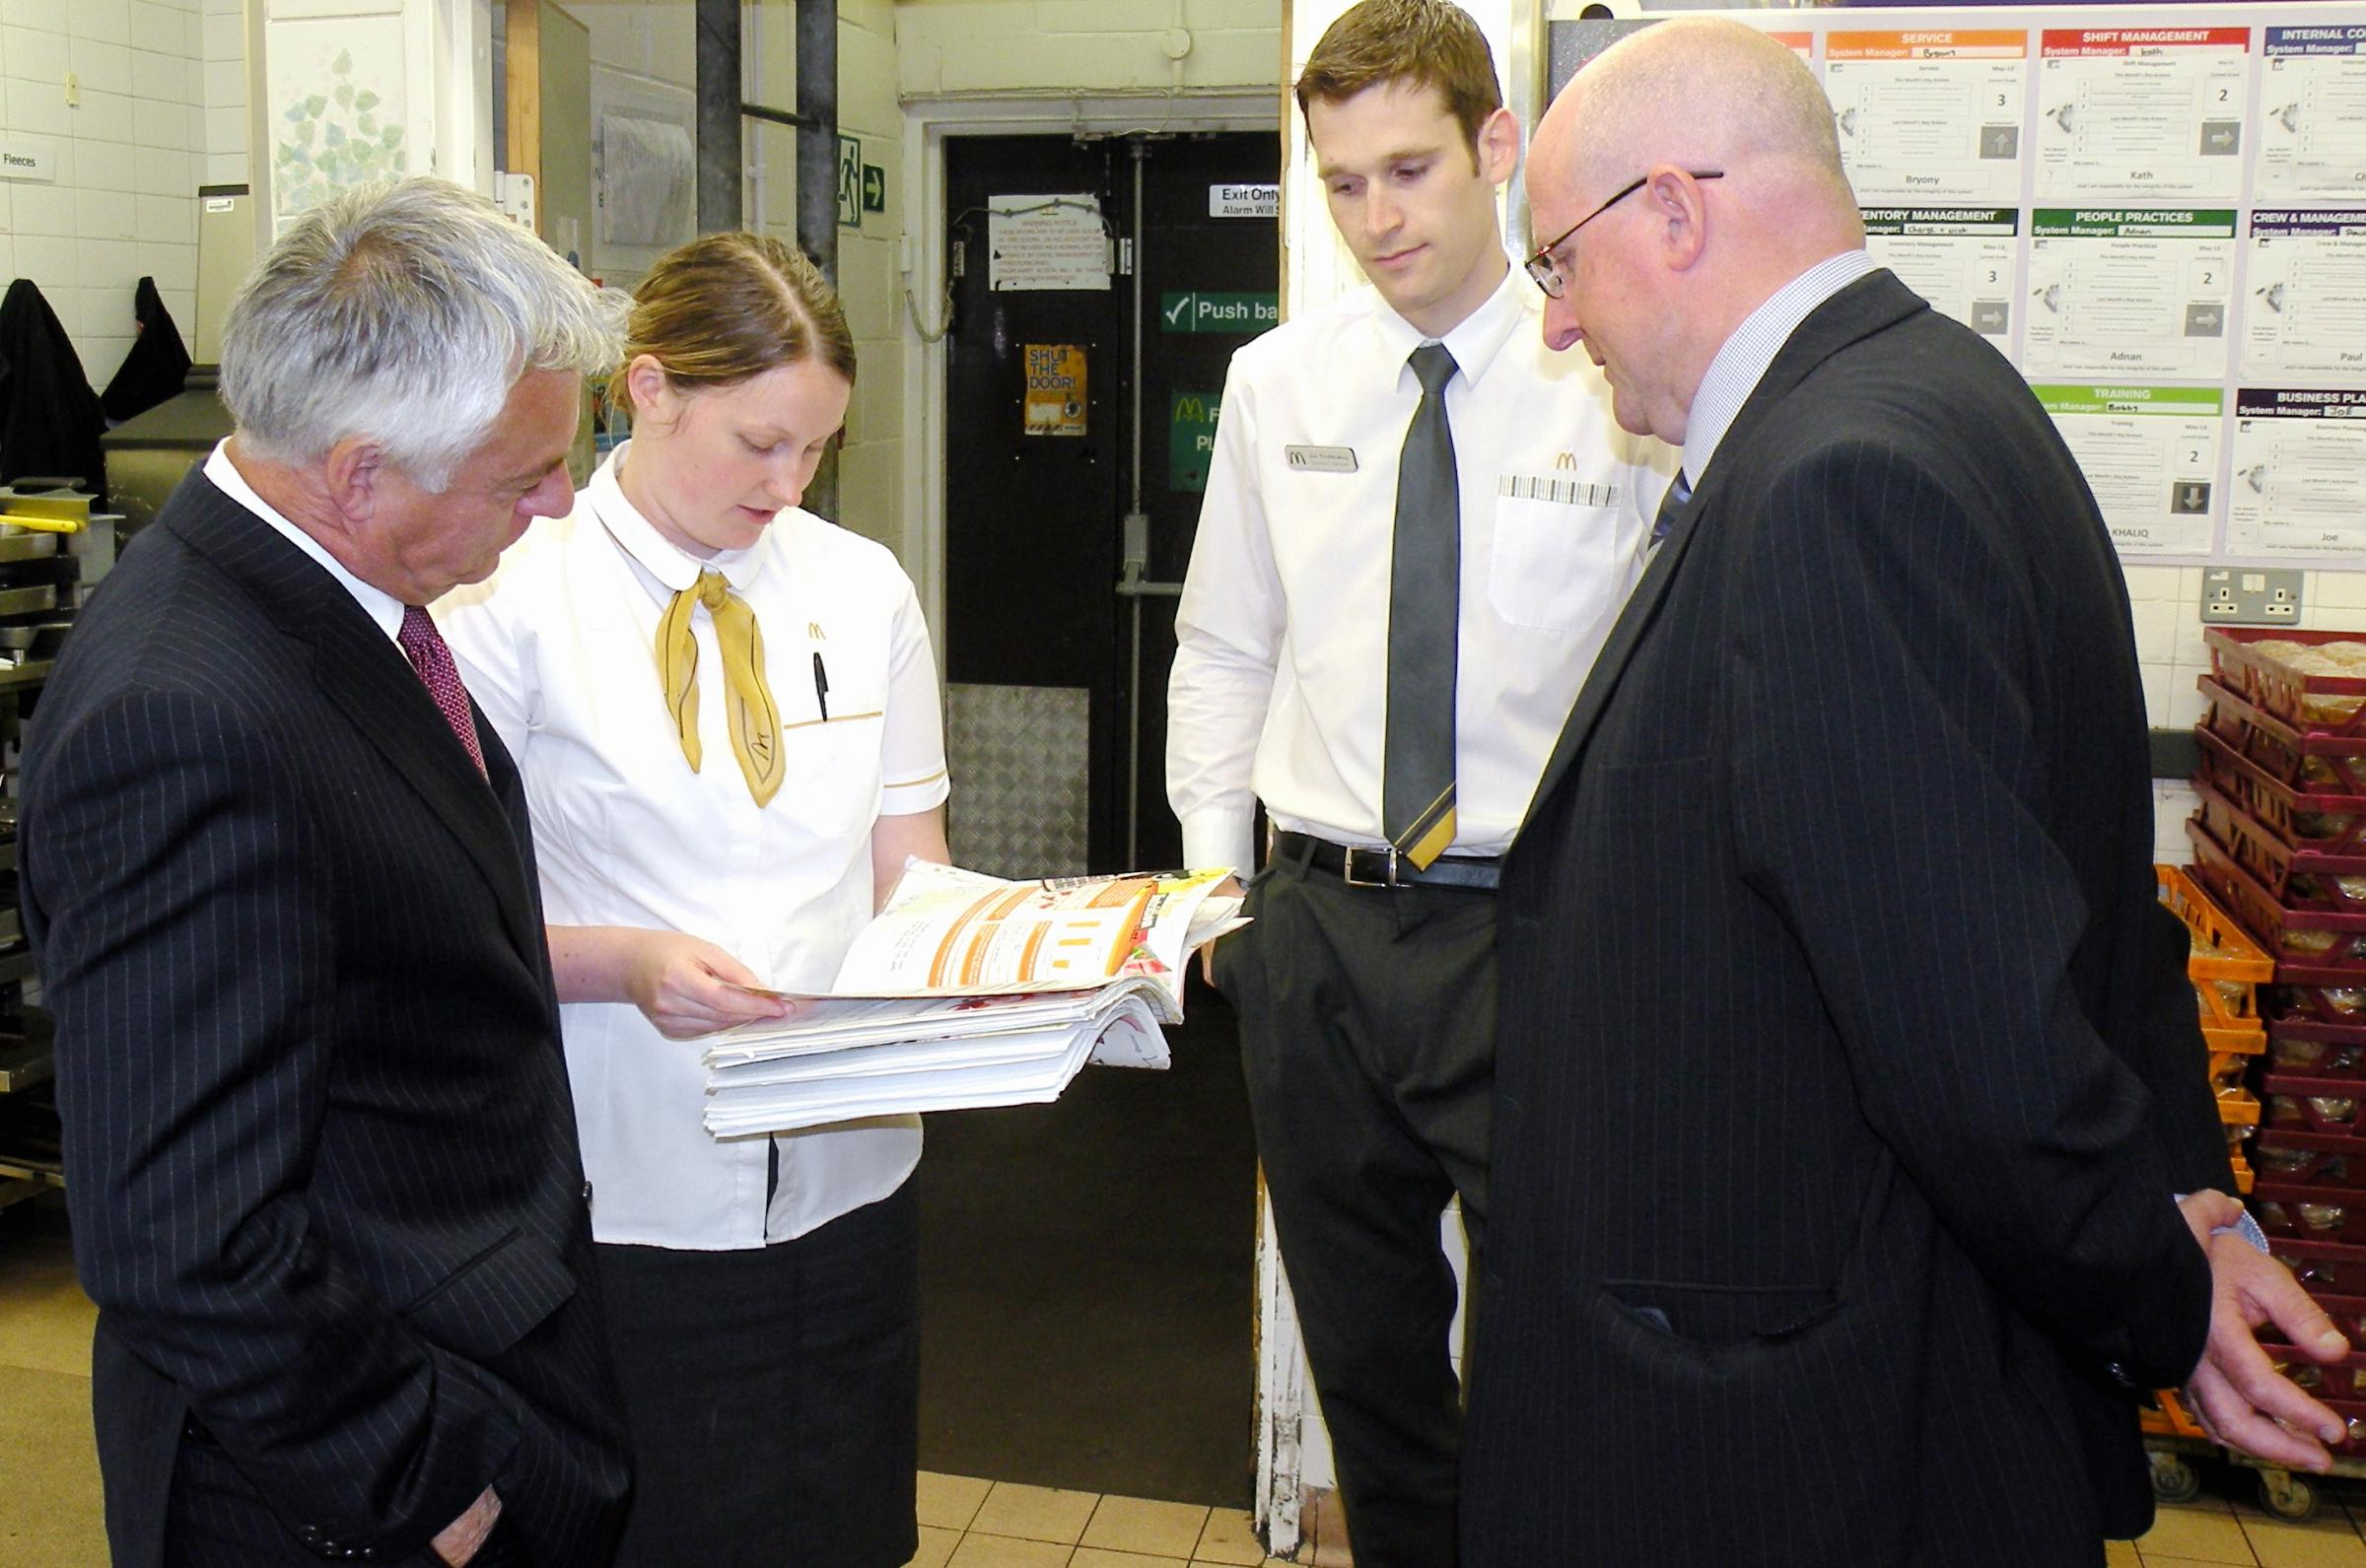 MP David Ward MP, left, and Duncan Taylor discuss the McDonald's Apprenticeship scheme